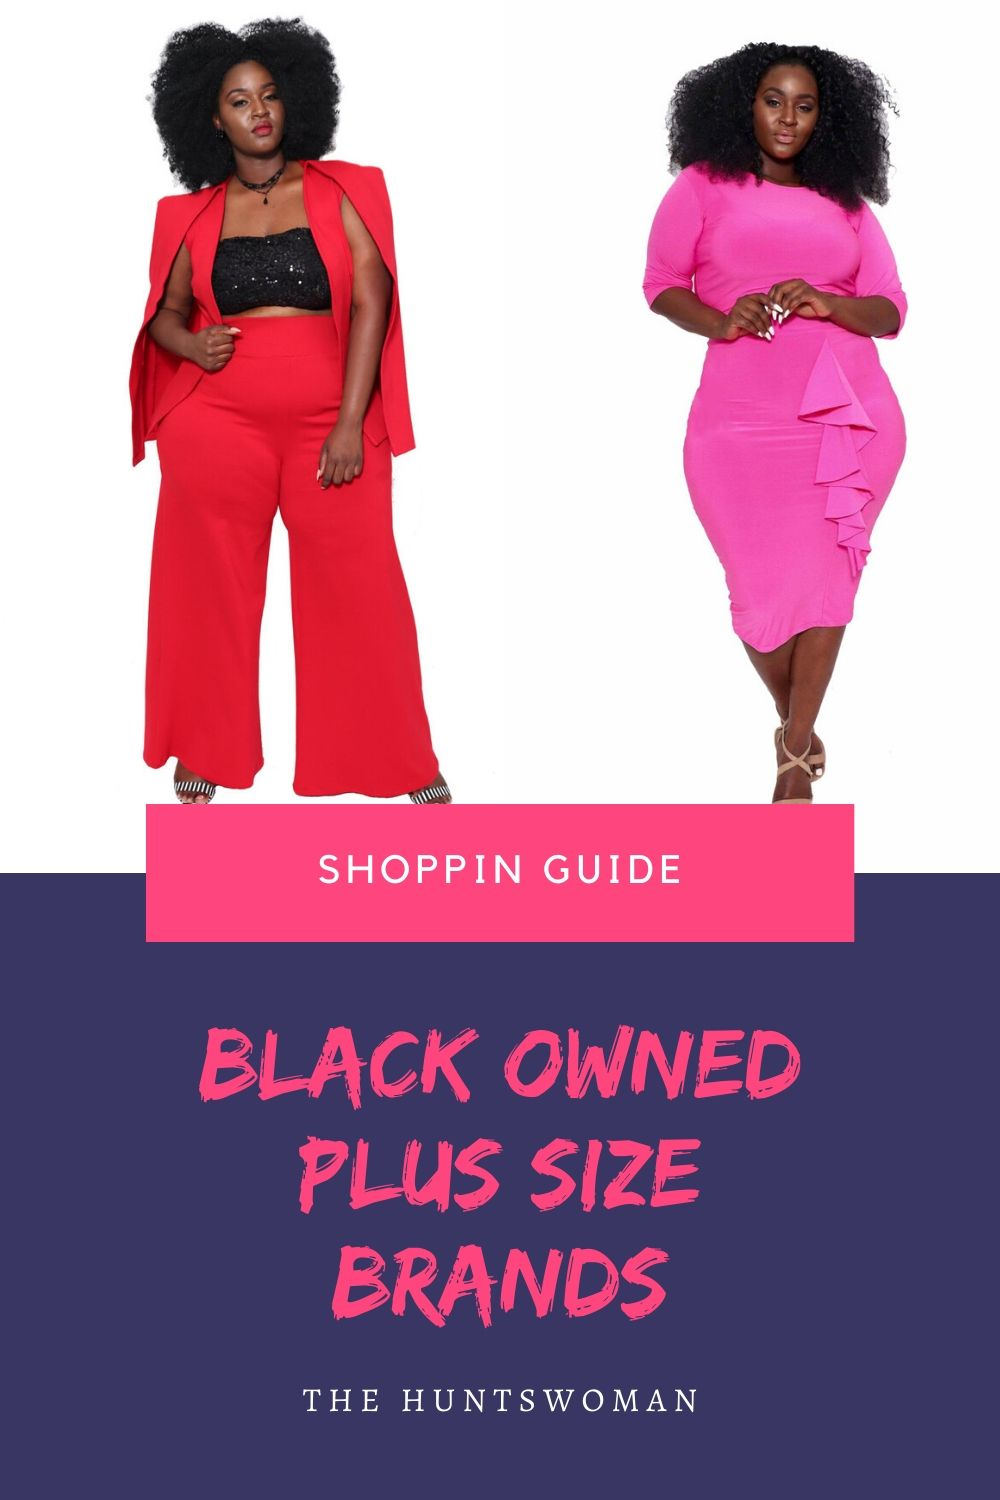 Black owned plus size brands